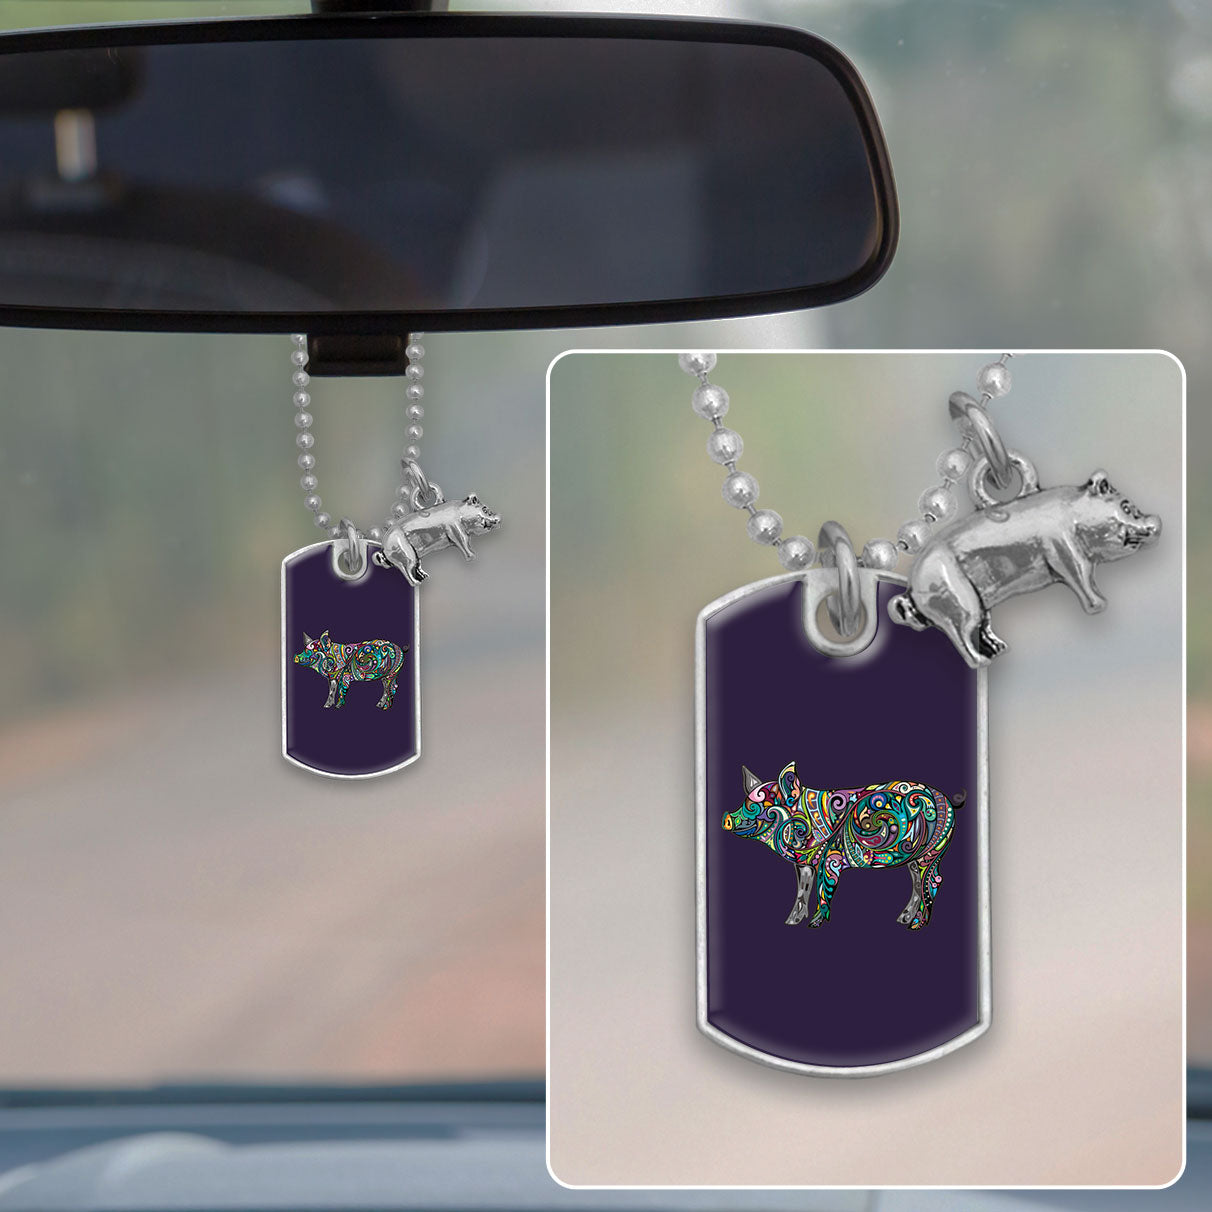 Pig Colorful Swirl Dog Tag Rearview Mirror Charm